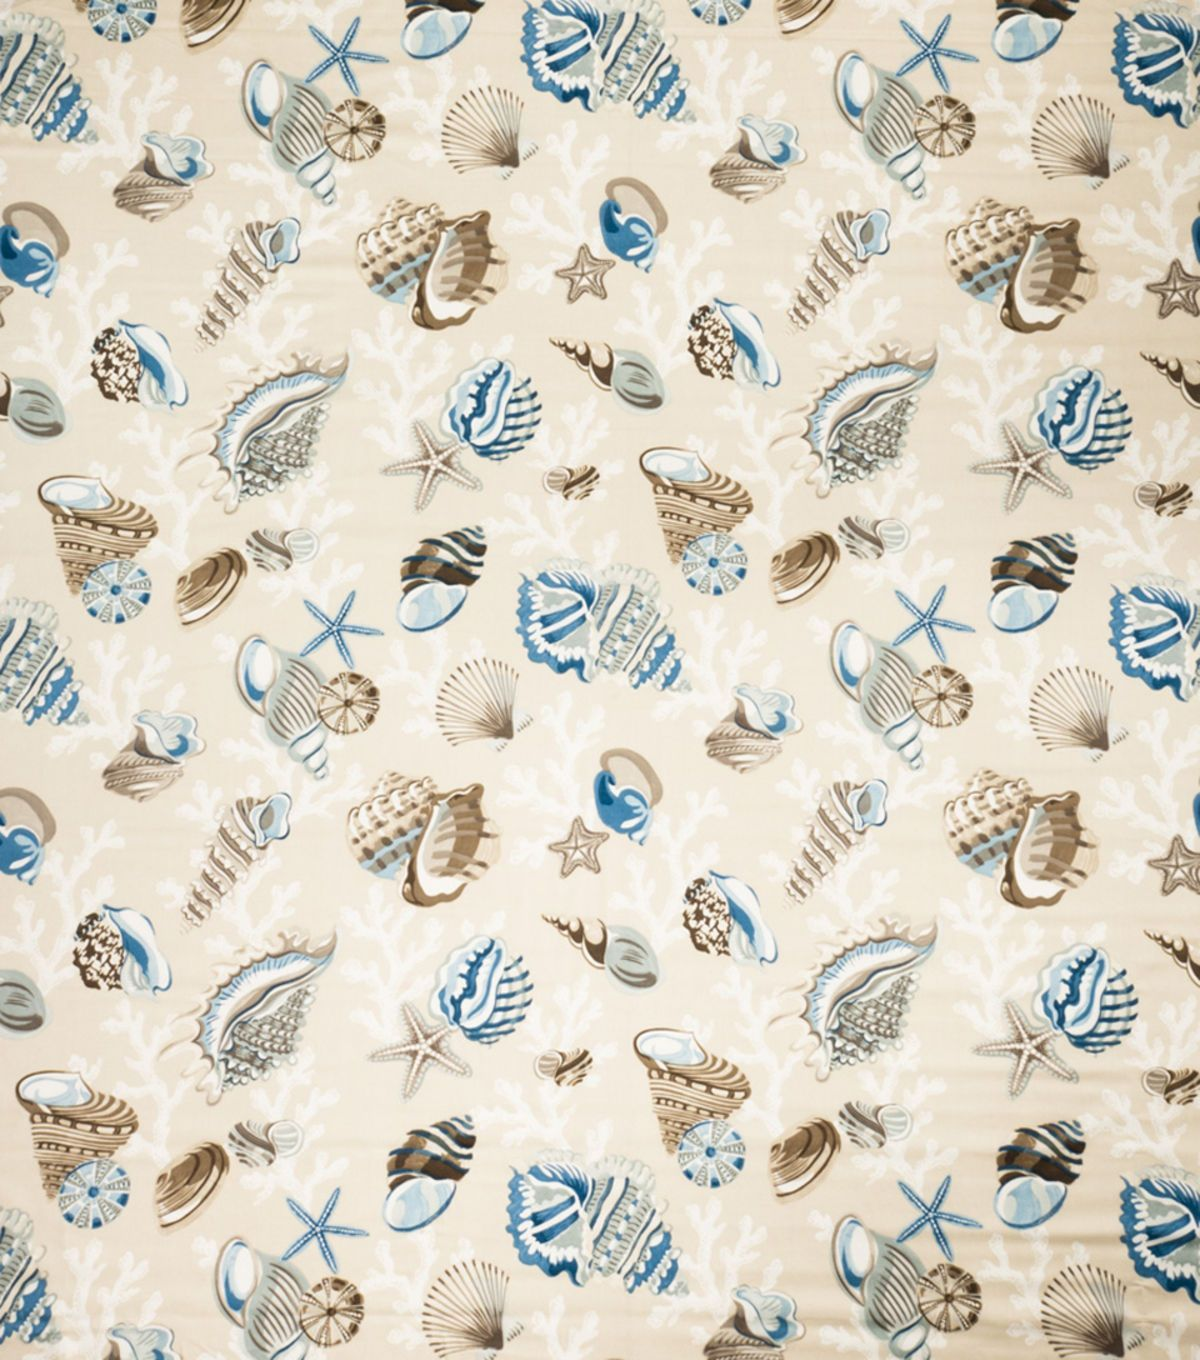 Upholstery Fabric-Eaton Square Howie Marine